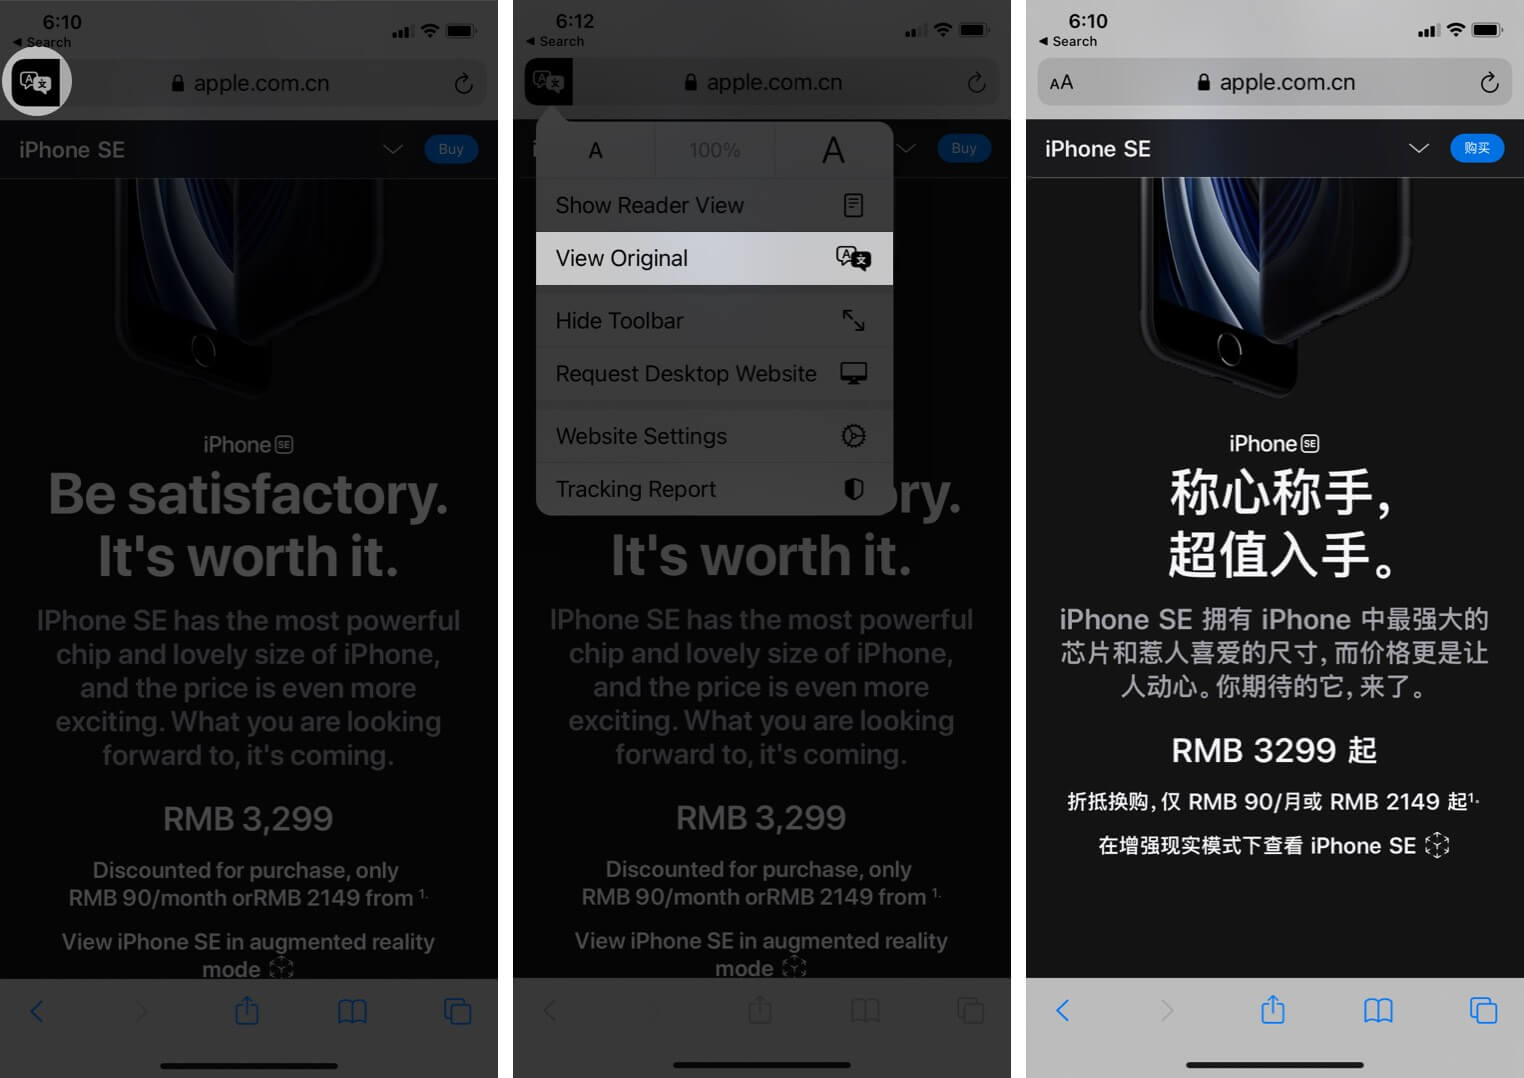 revert to original from translated webpage in ios 14 safari app on iphone